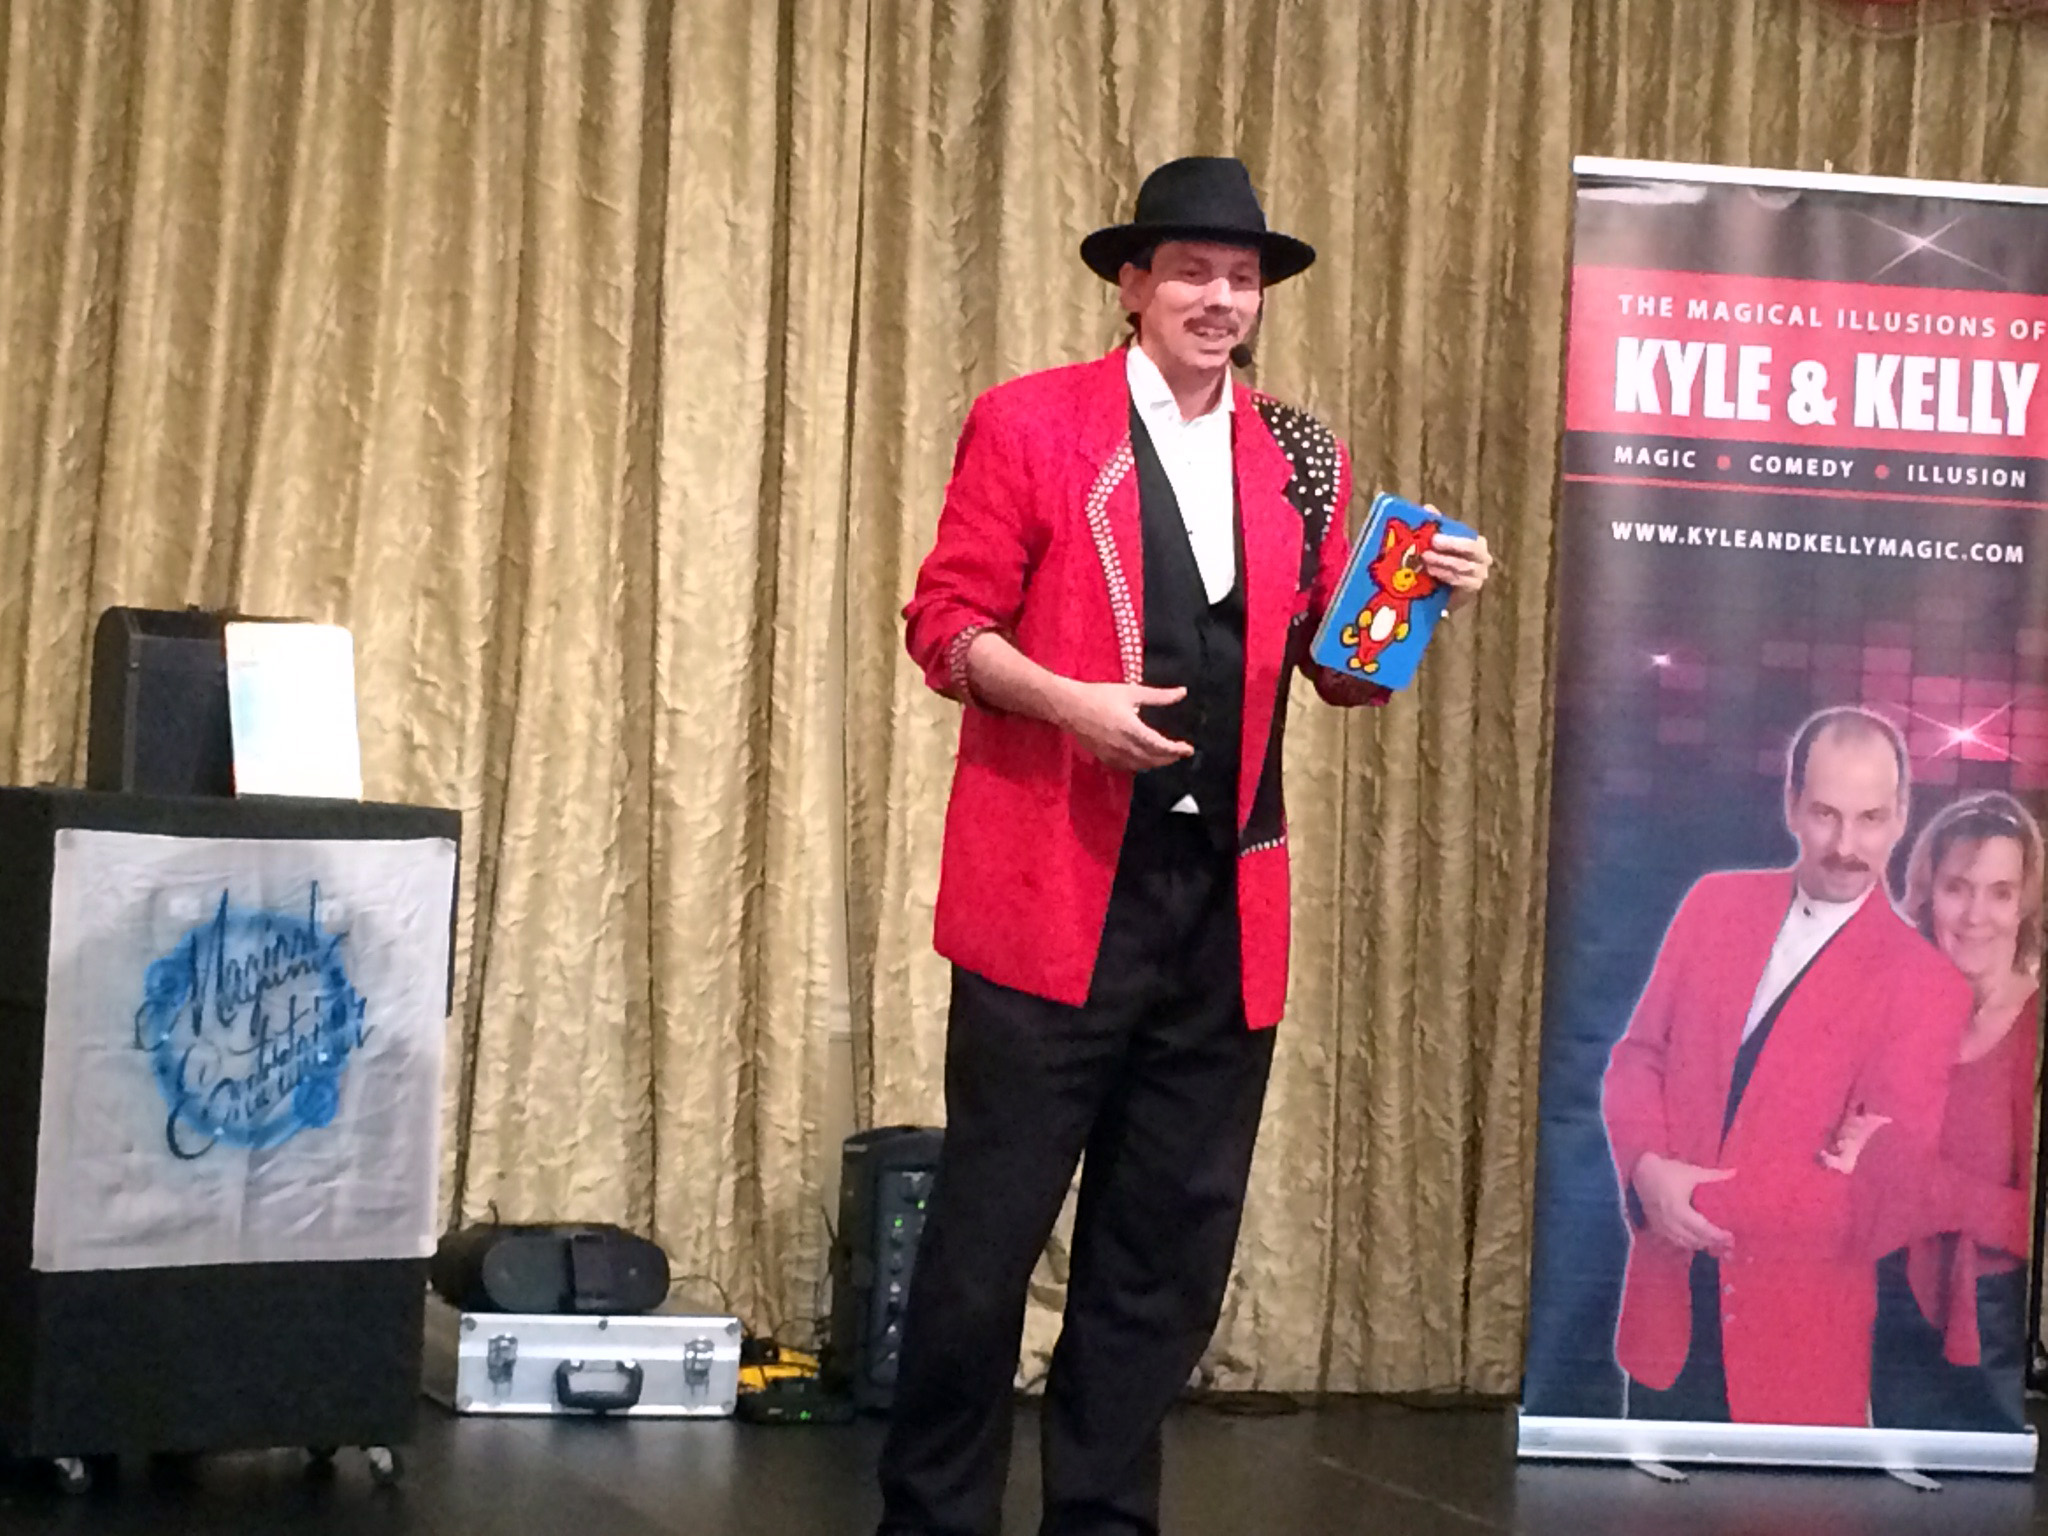 Kyle performing funny magic trick for Birthday party event